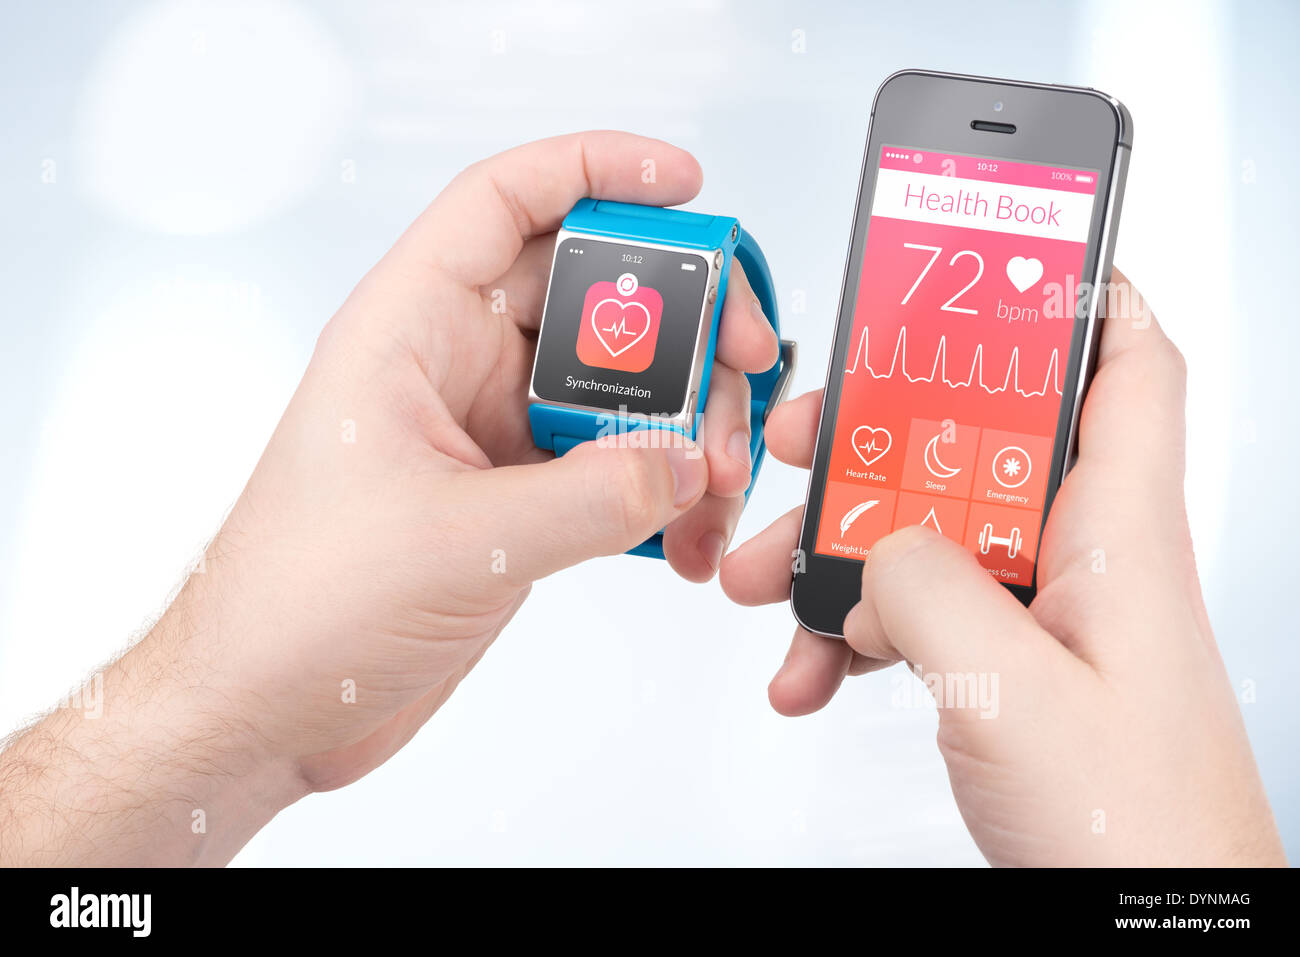 Data synchronization of health book between smartwatch and smartphone in male hands - Stock Image